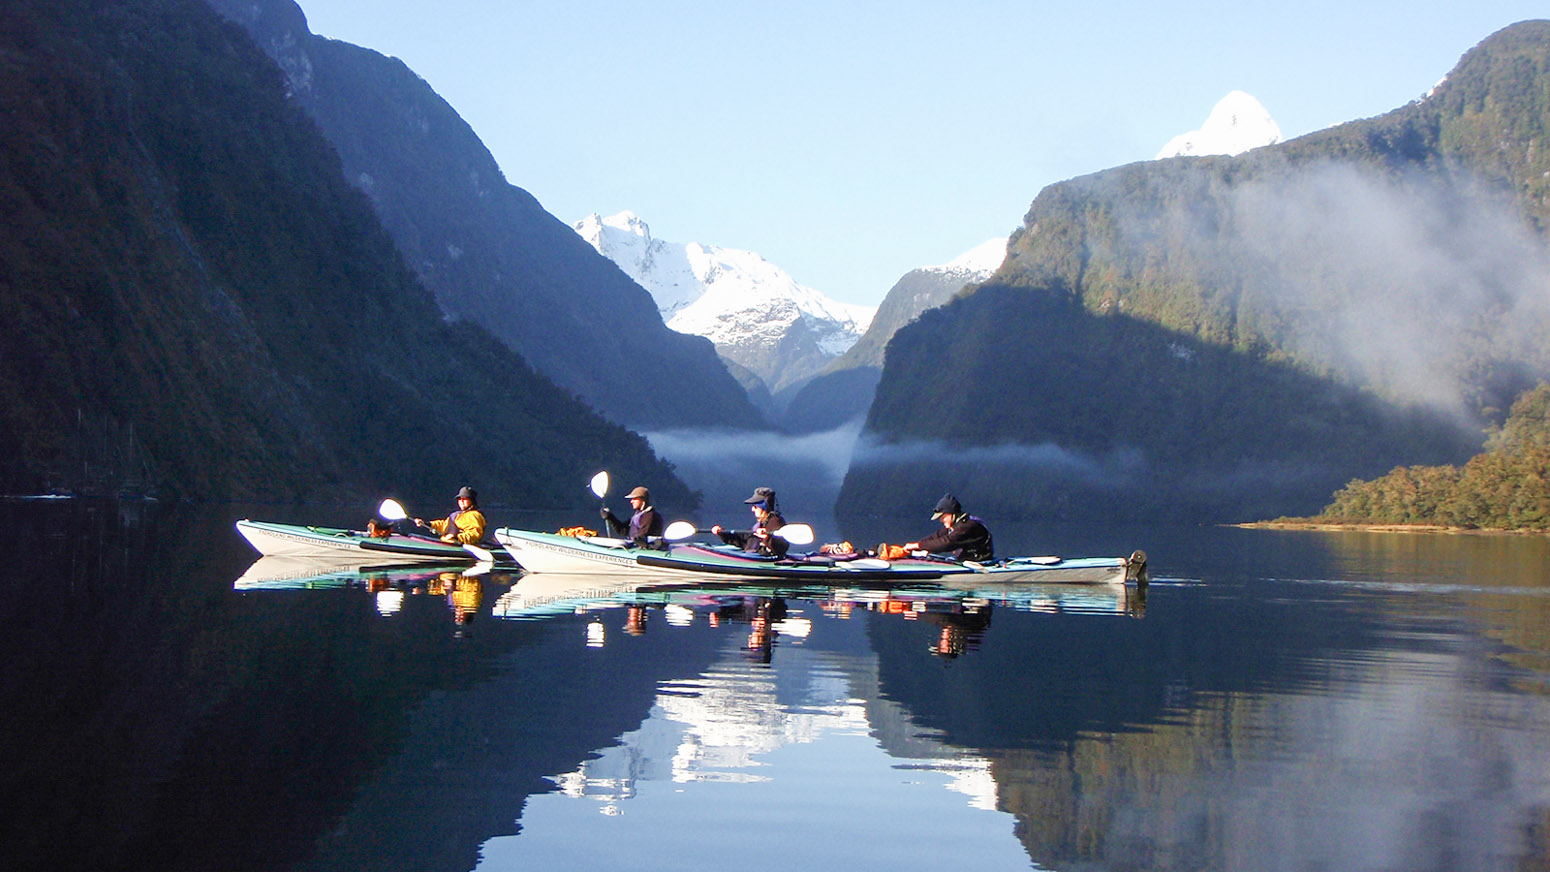 Sea kayakers reflected in the waters of Doubtful Sound